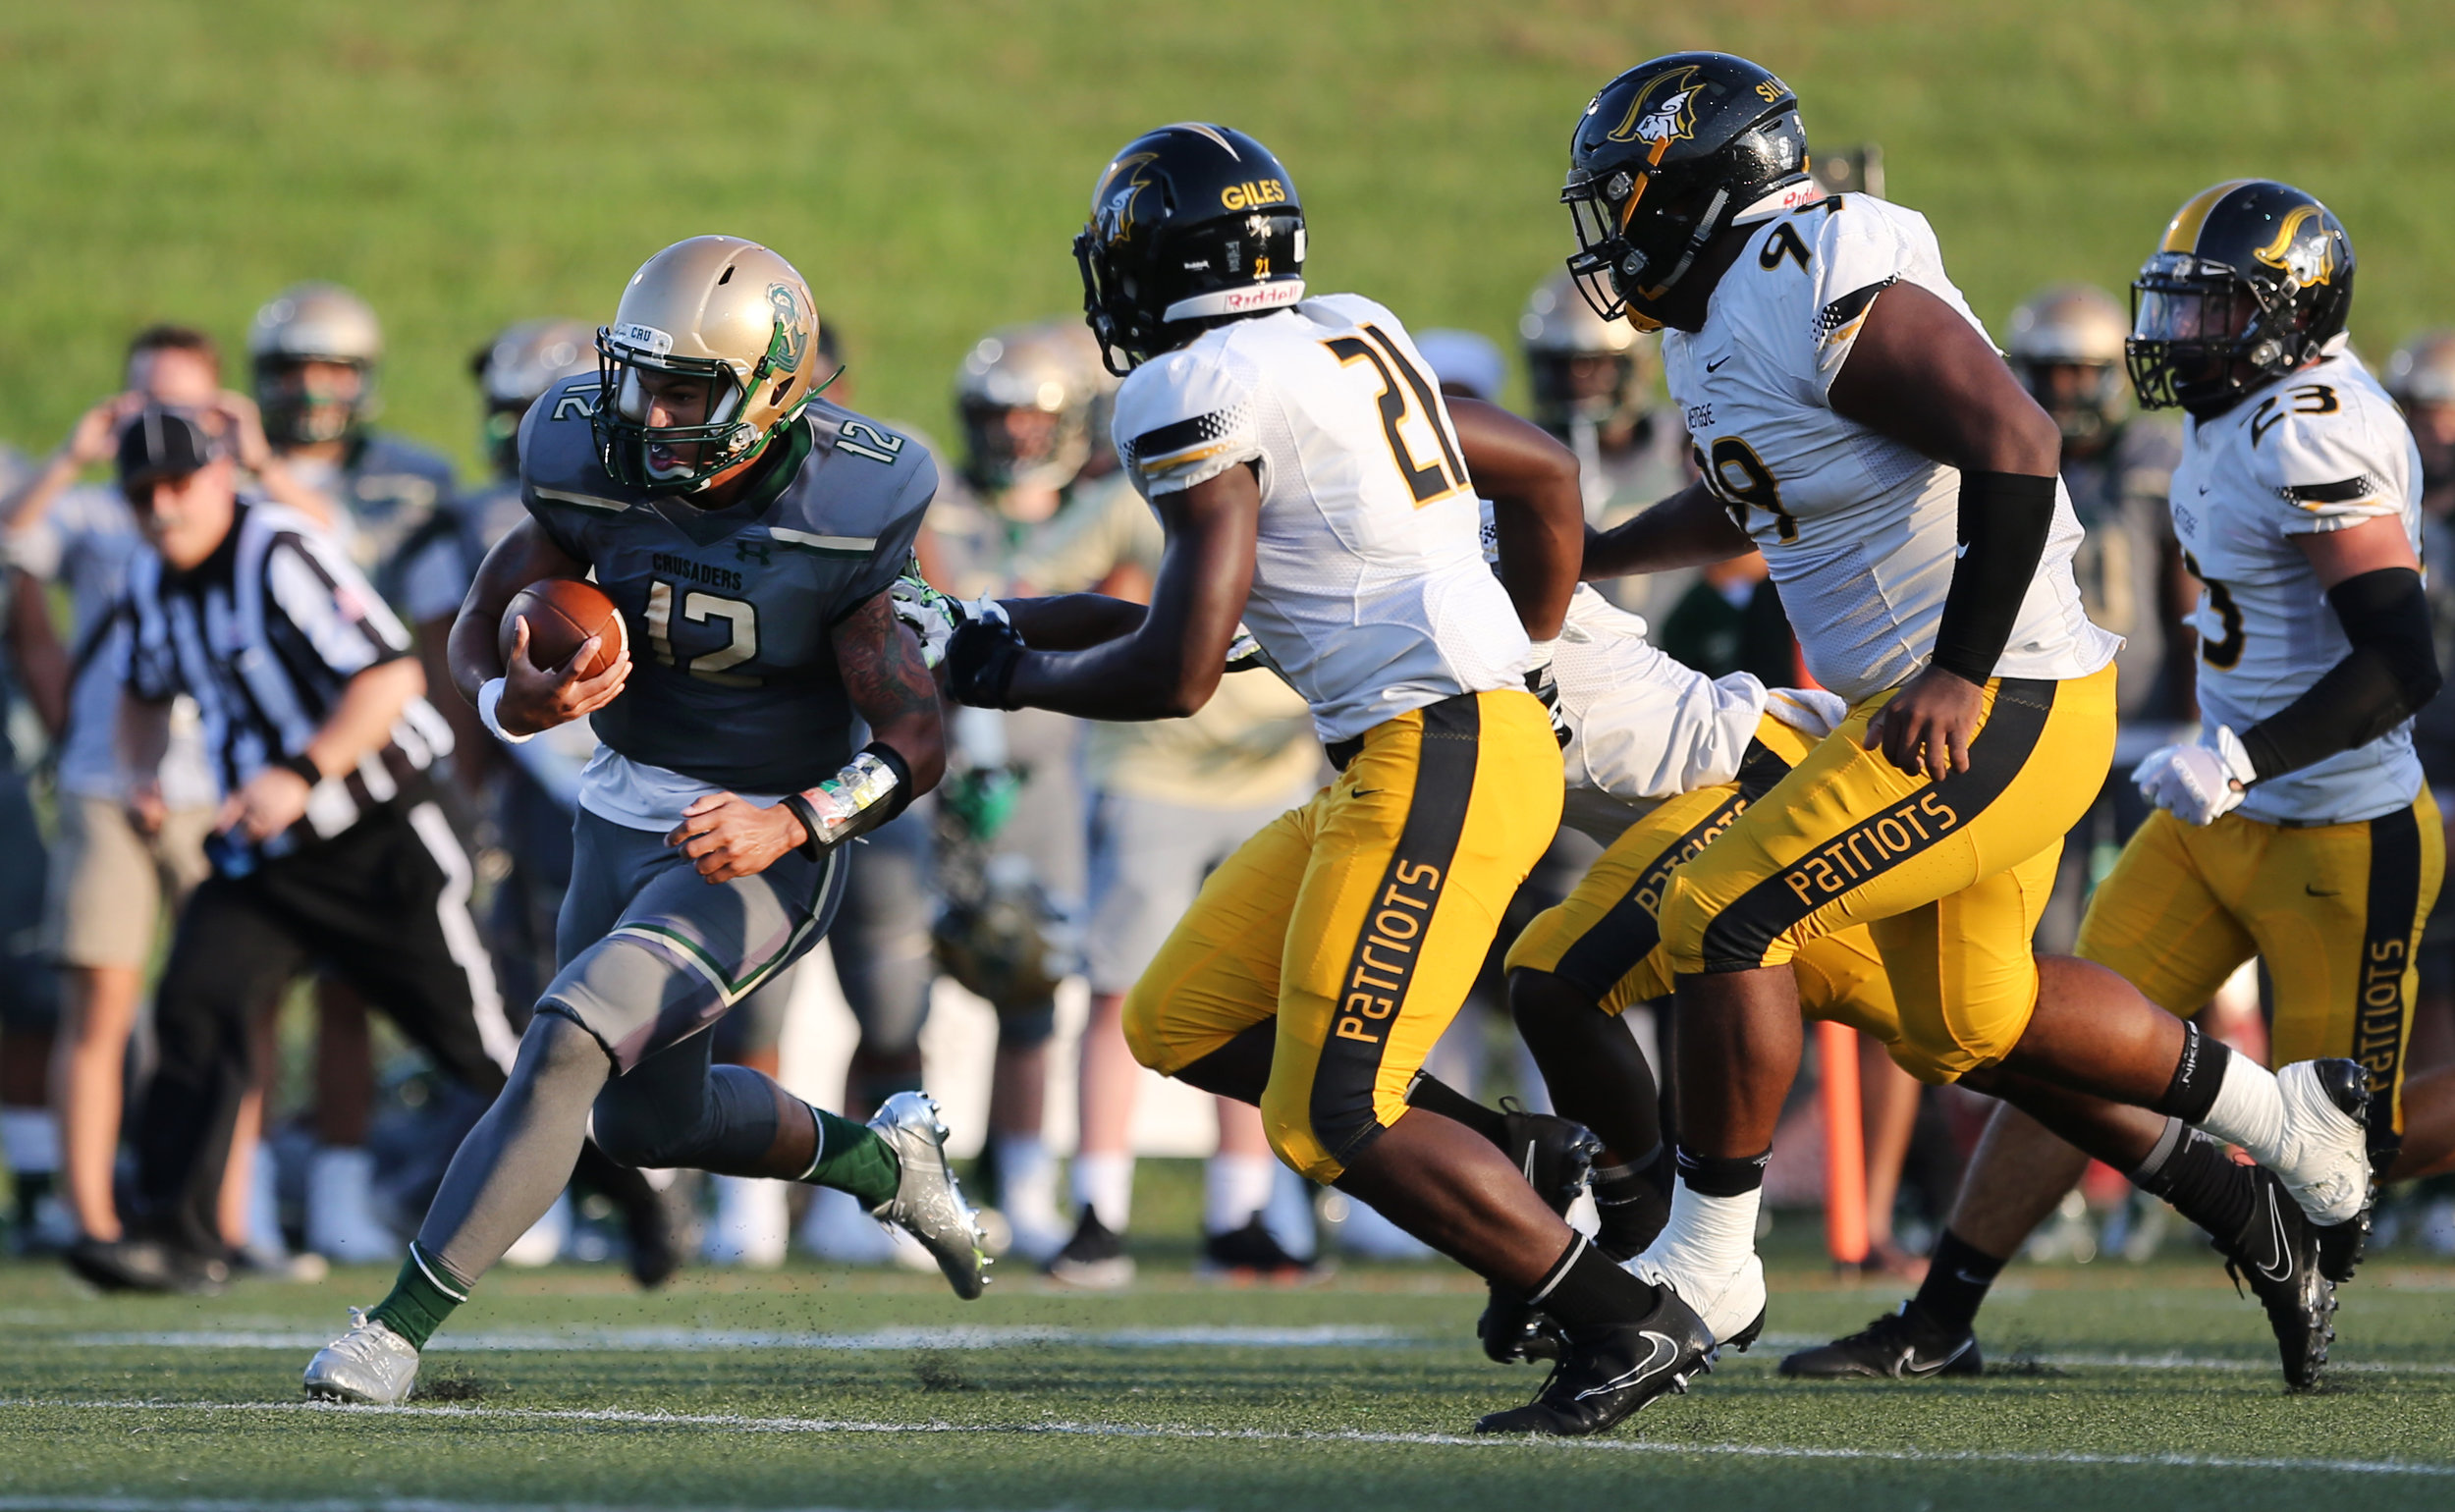 Bishop Sullivan's Tyler DeSue runs the ball on a quarterback keeper play past American Heritage defenders  during the Crusaders' 14-7 loss, Saturday, August 26, 2017 at the Sportsplex in Virginia Beach.